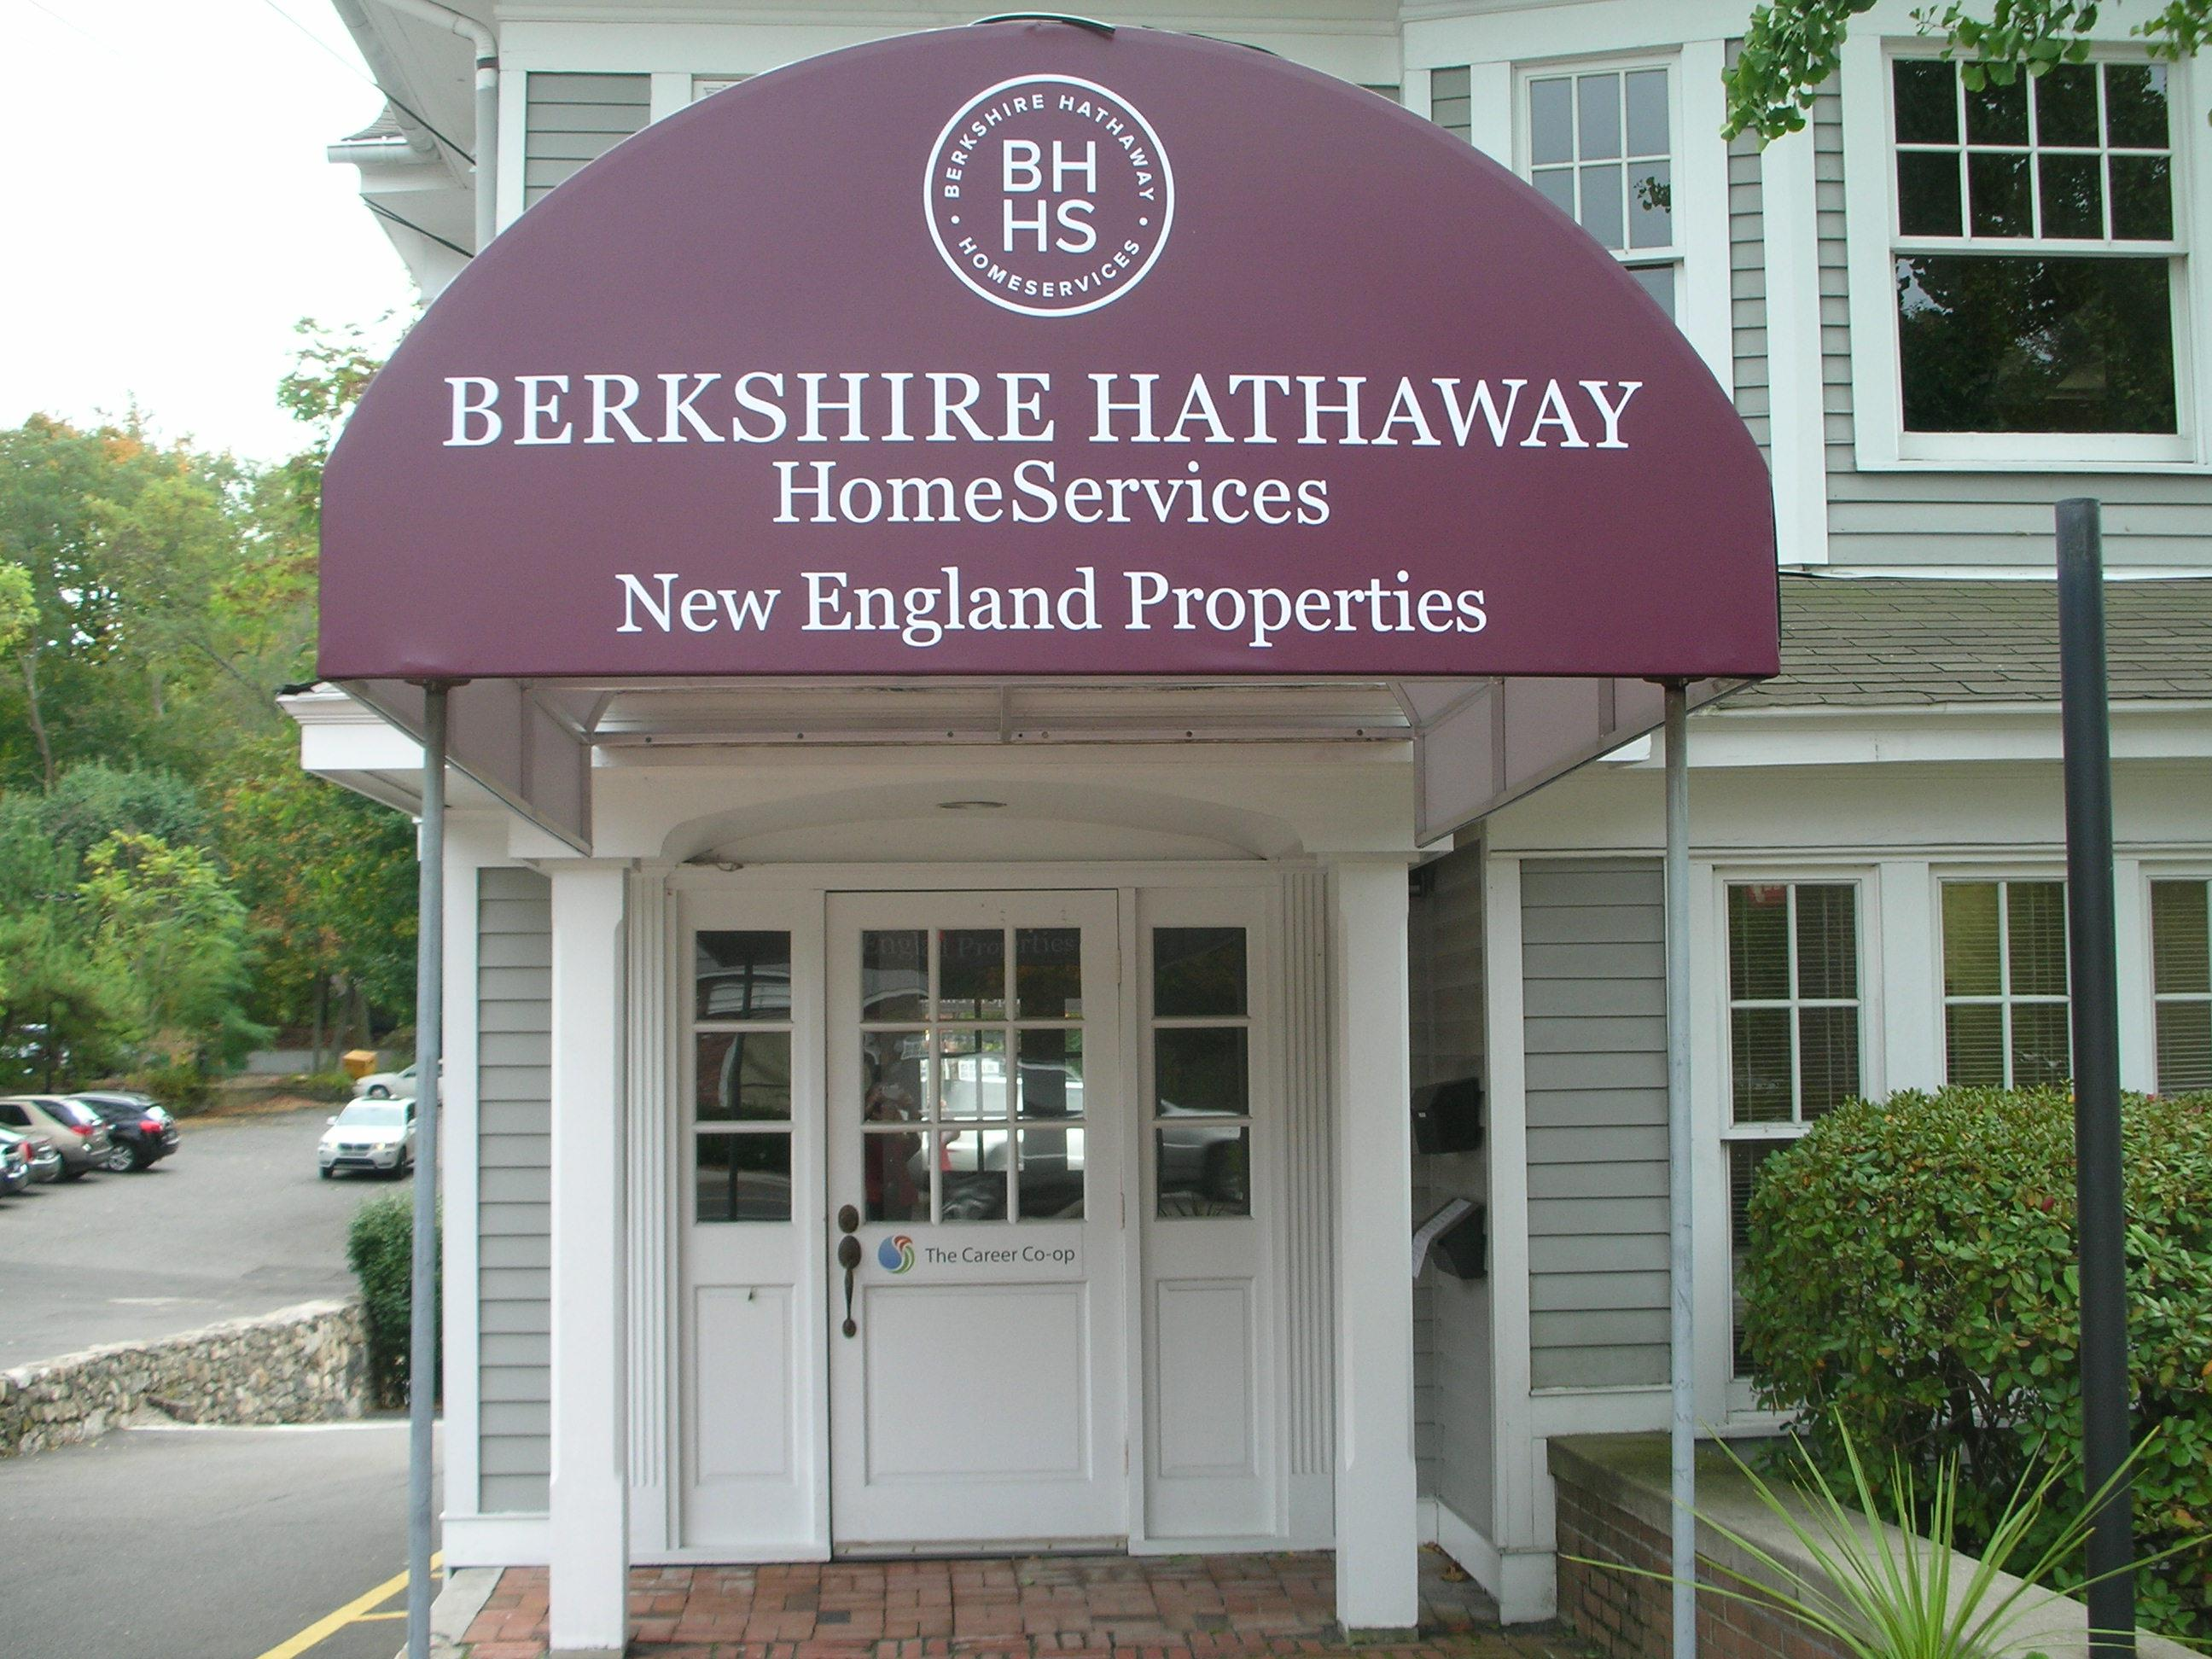 Berkshire Hathaway HomesServices New England Properties